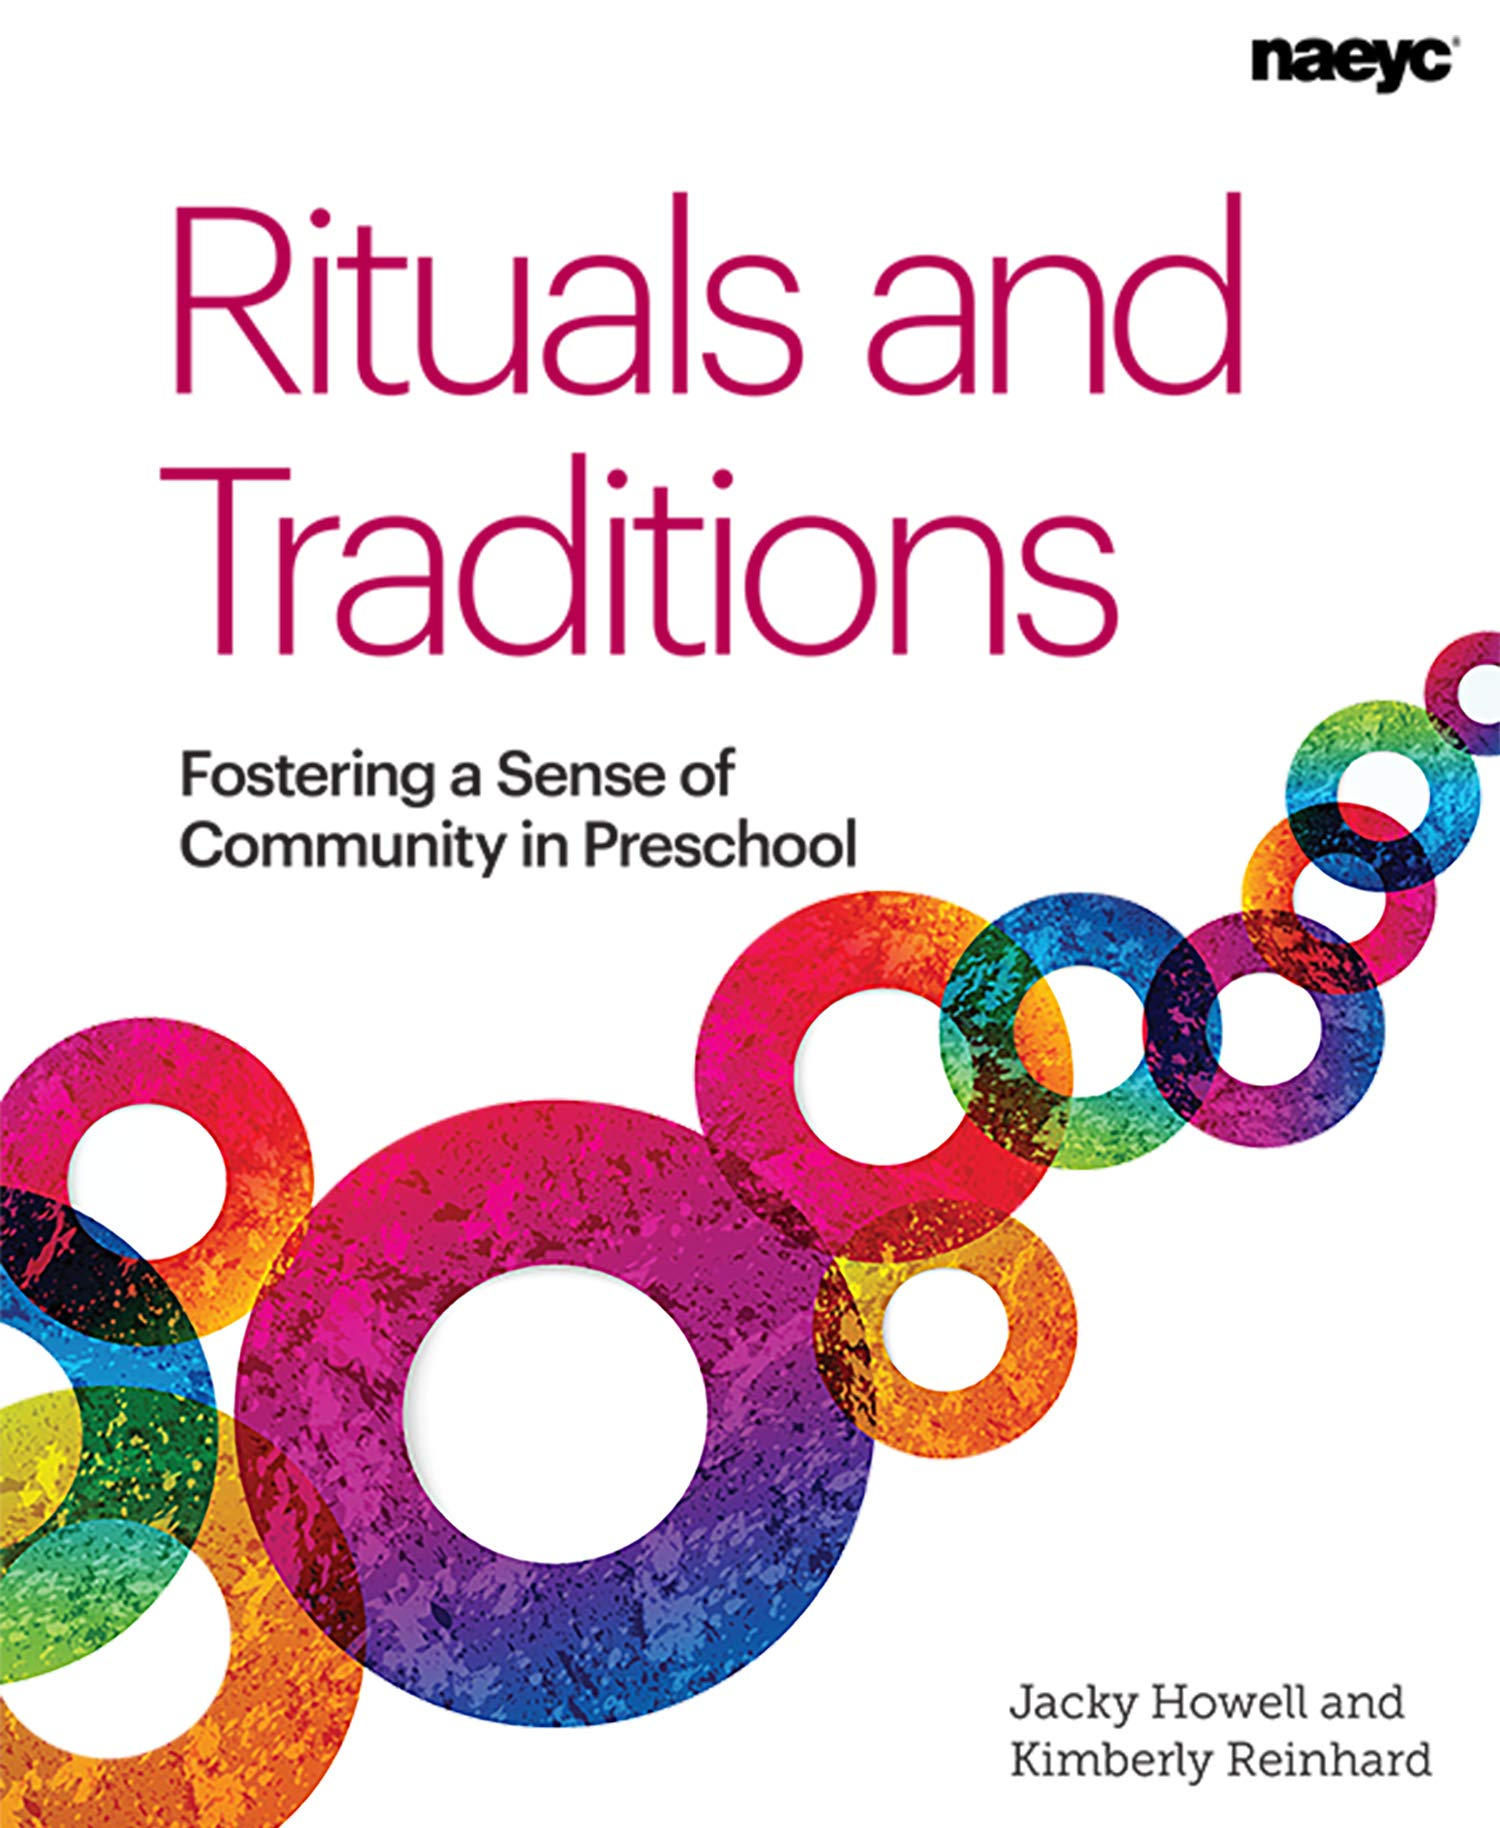 Rituals and Traditions: Fostering a Sense of Community in Preschool ebook